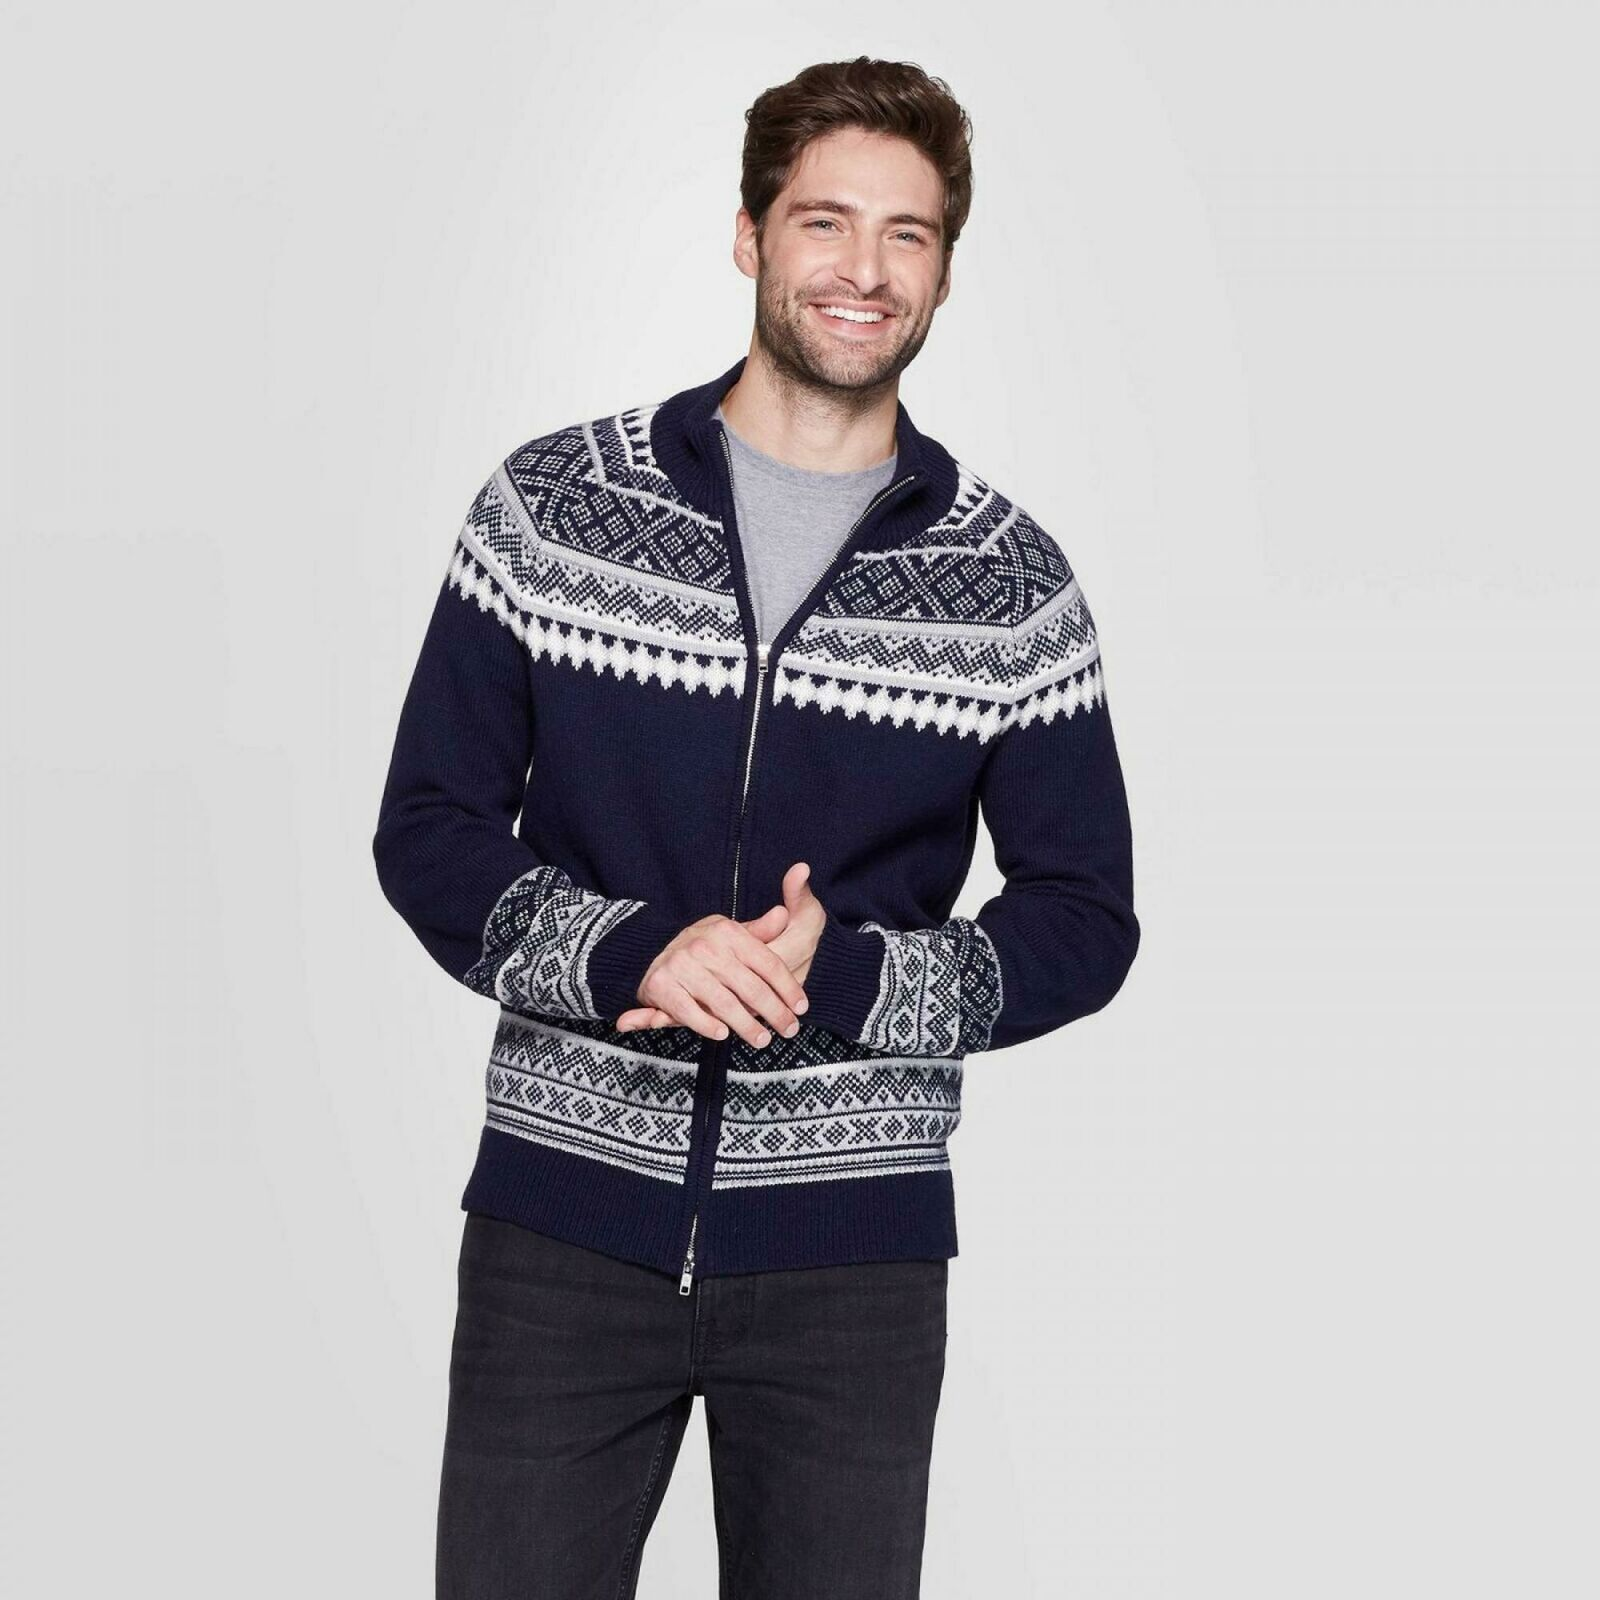 Details about Goodfellow & Co Jacquard Standard Fit Fairisle Holiday Sweater. Navy Small